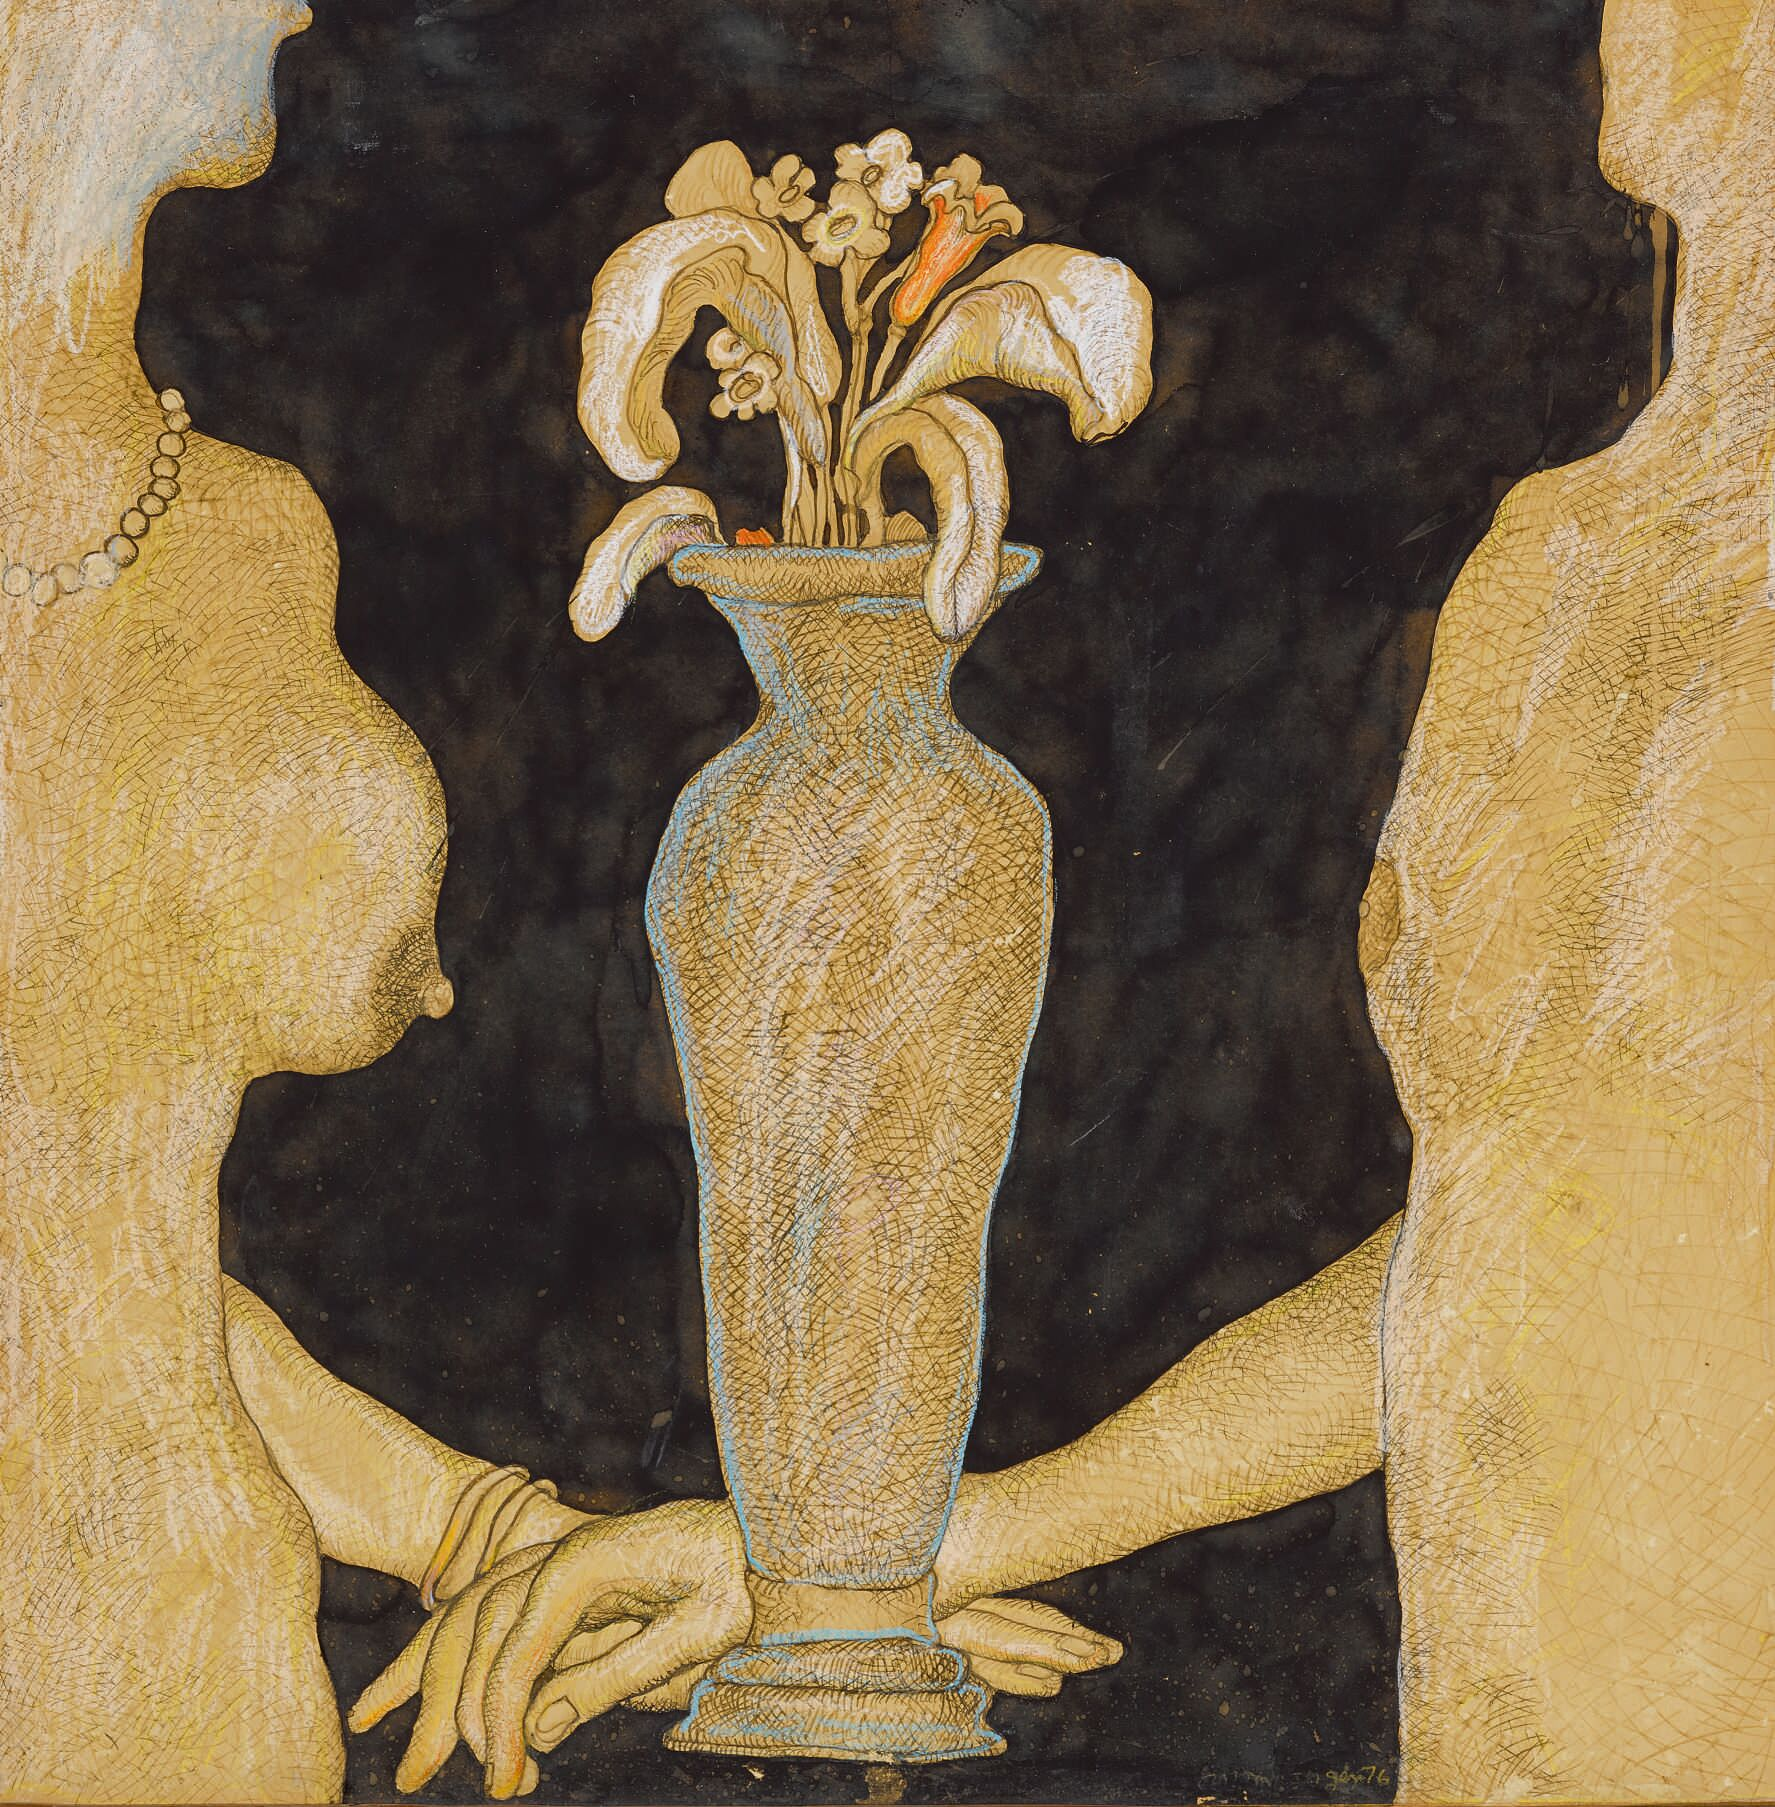 The Grey Vase, gouache, pastel and ink on paper by Jogen Chowdhury. Estimate: $40,000-60,000